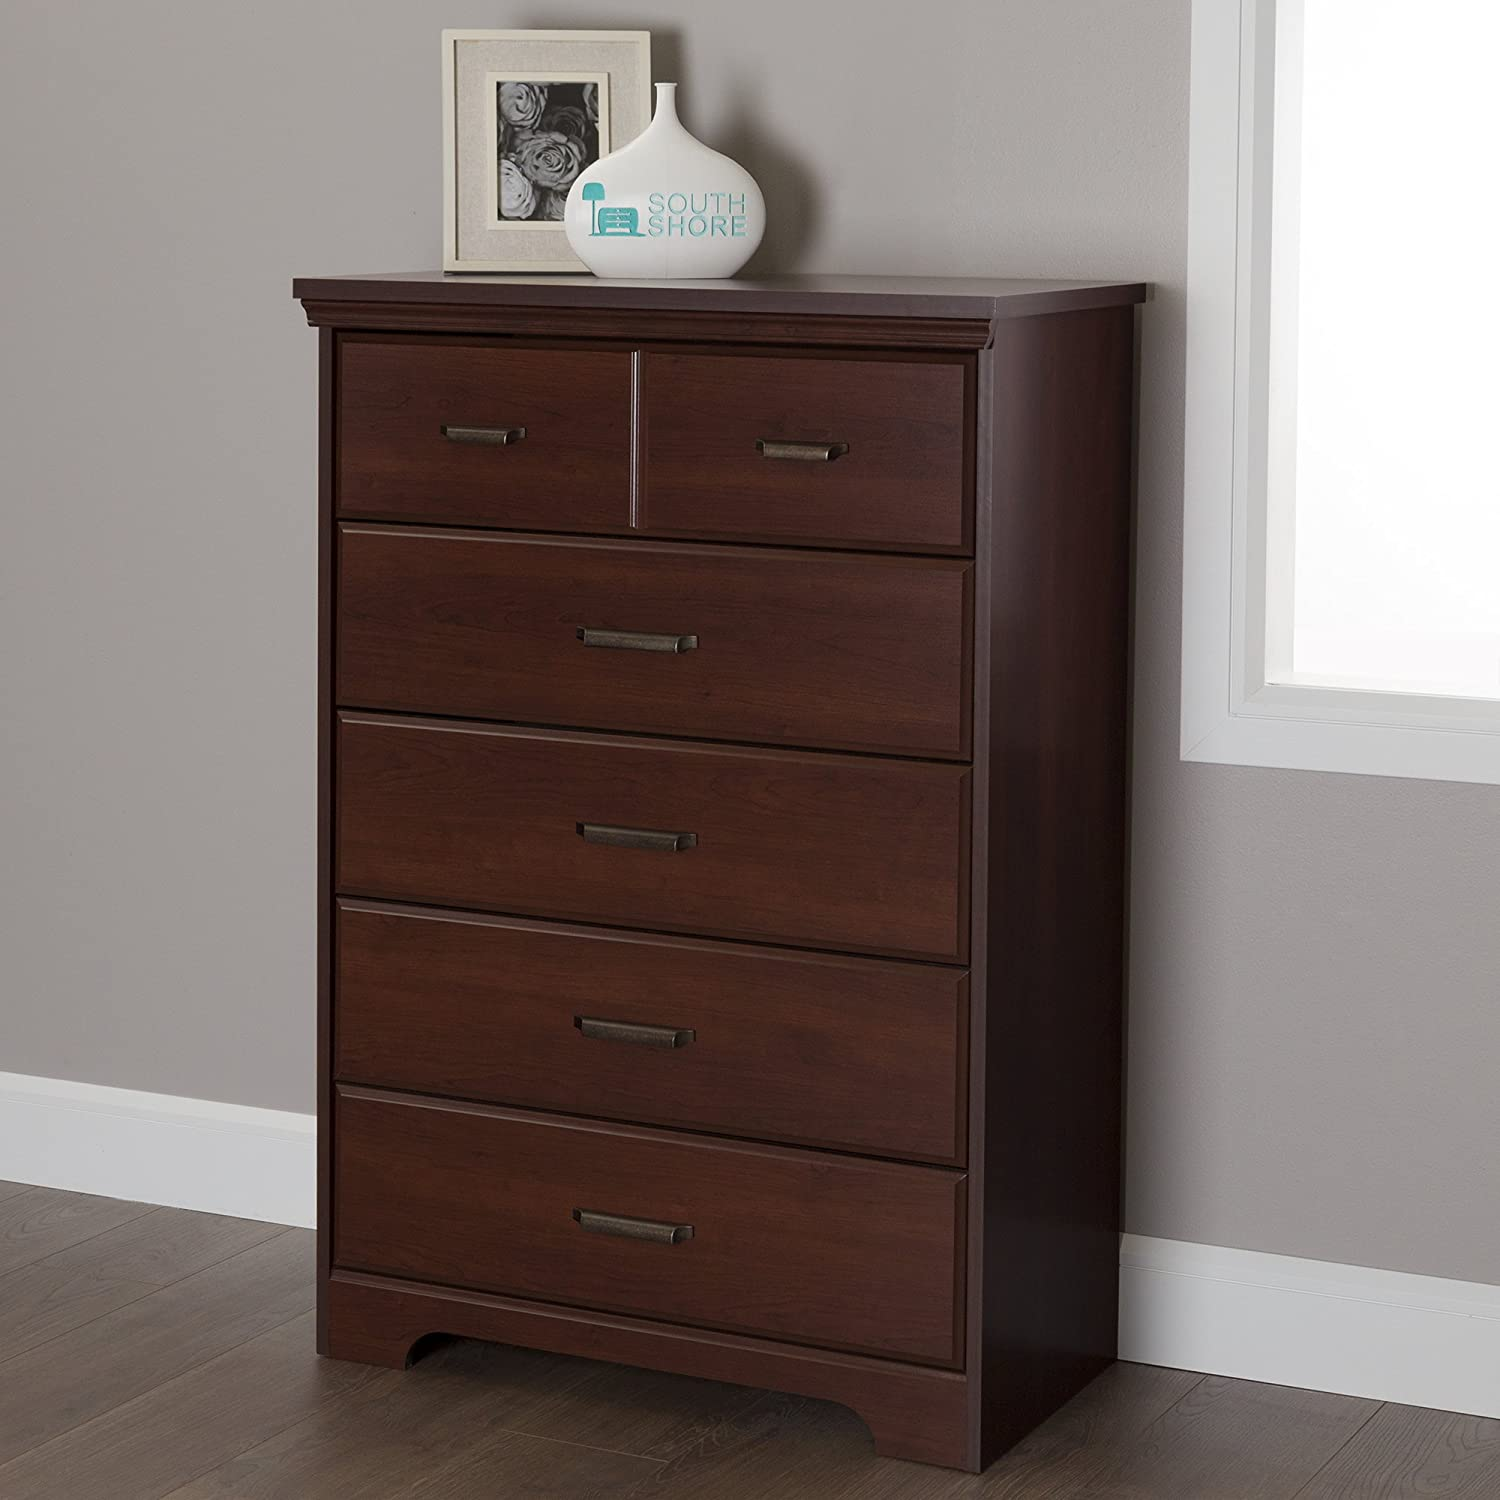 south shore furniture versa drawer chest gray maple amazonca  - south shore furniture versa drawer chest gray maple amazonca home kitchen